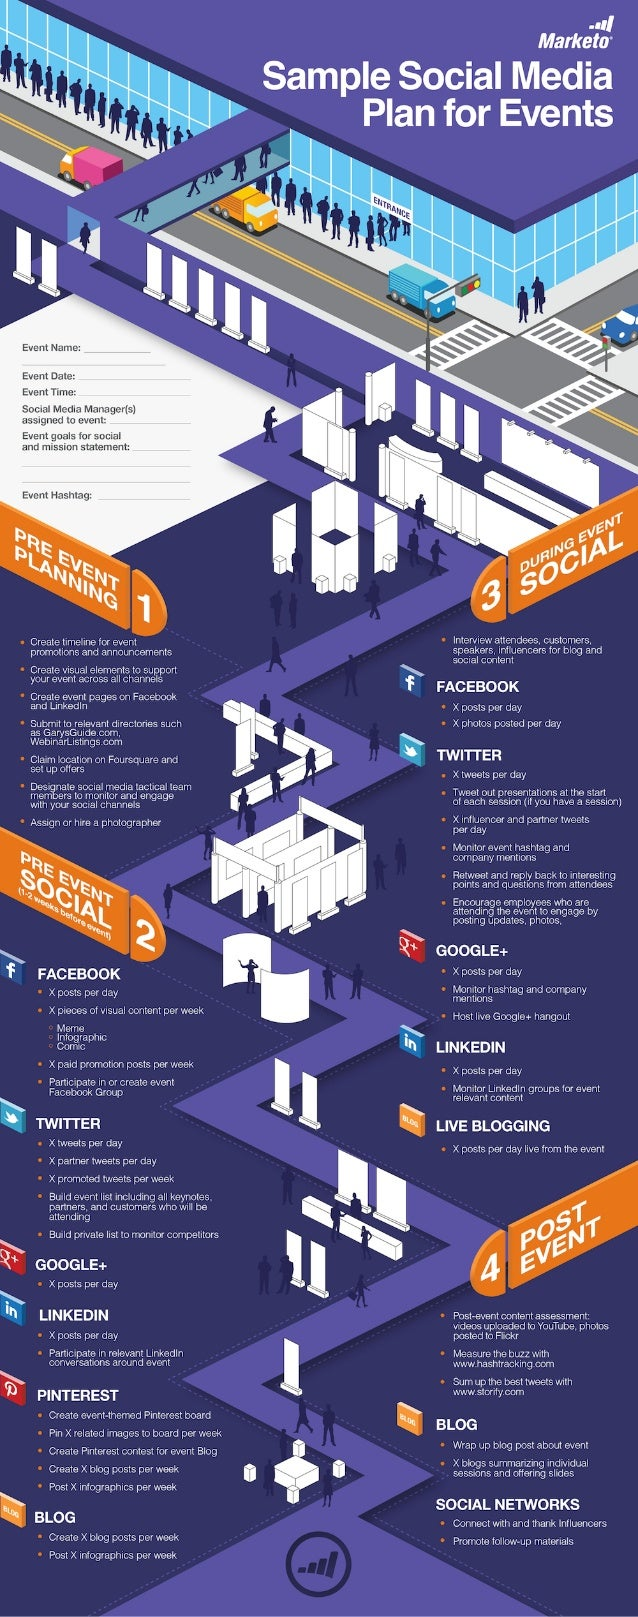 Collaborative IQ with Denise Holt - INFOGRAPHIC Social Media Events Planner